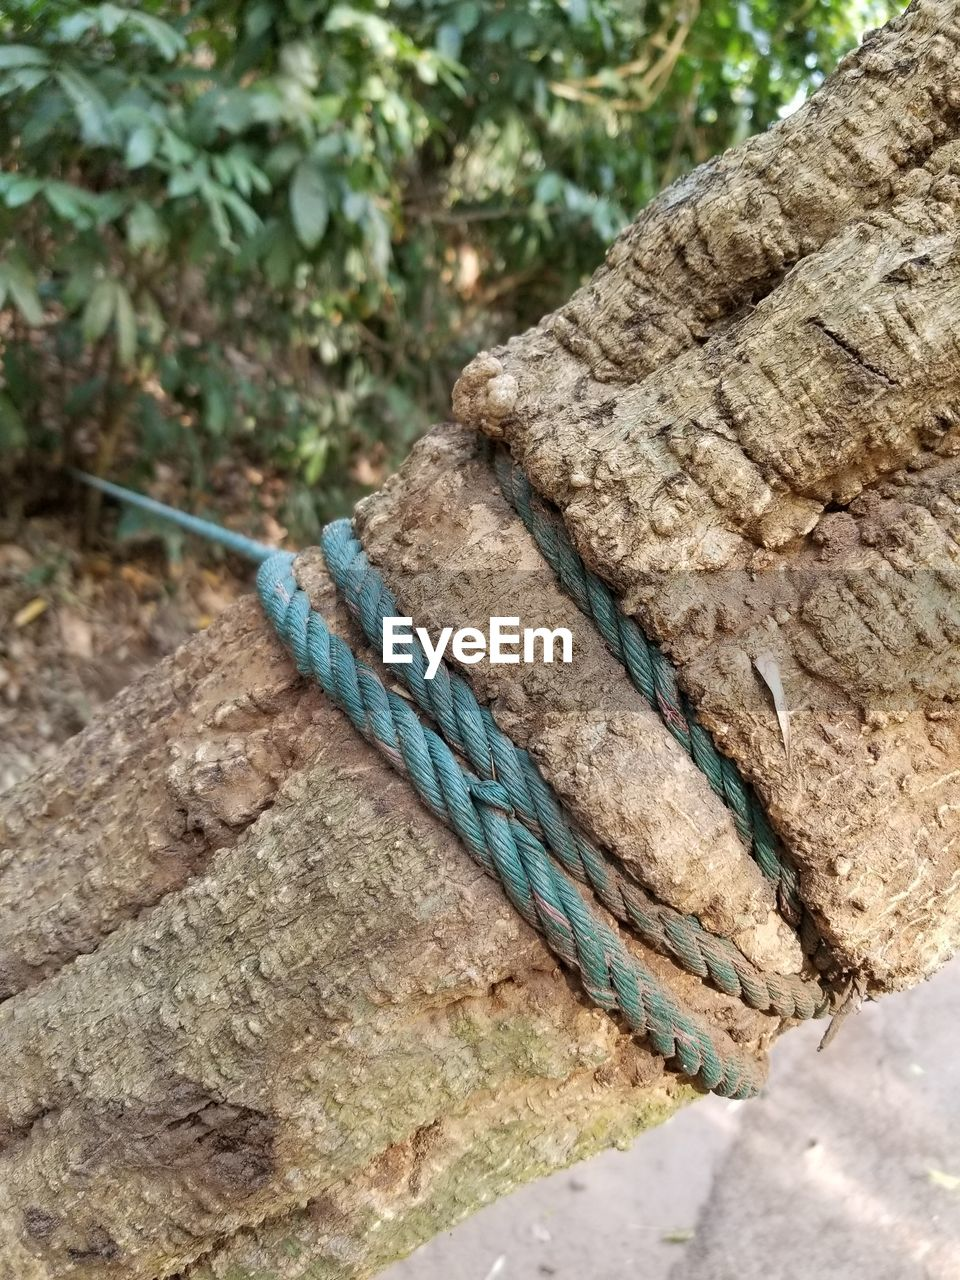 close-up, focus on foreground, day, rope, no people, textured, tied up, strength, nature, rough, pattern, high angle view, rock, plant, tied knot, blue, outdoors, twisted, tree, rock - object, tangled